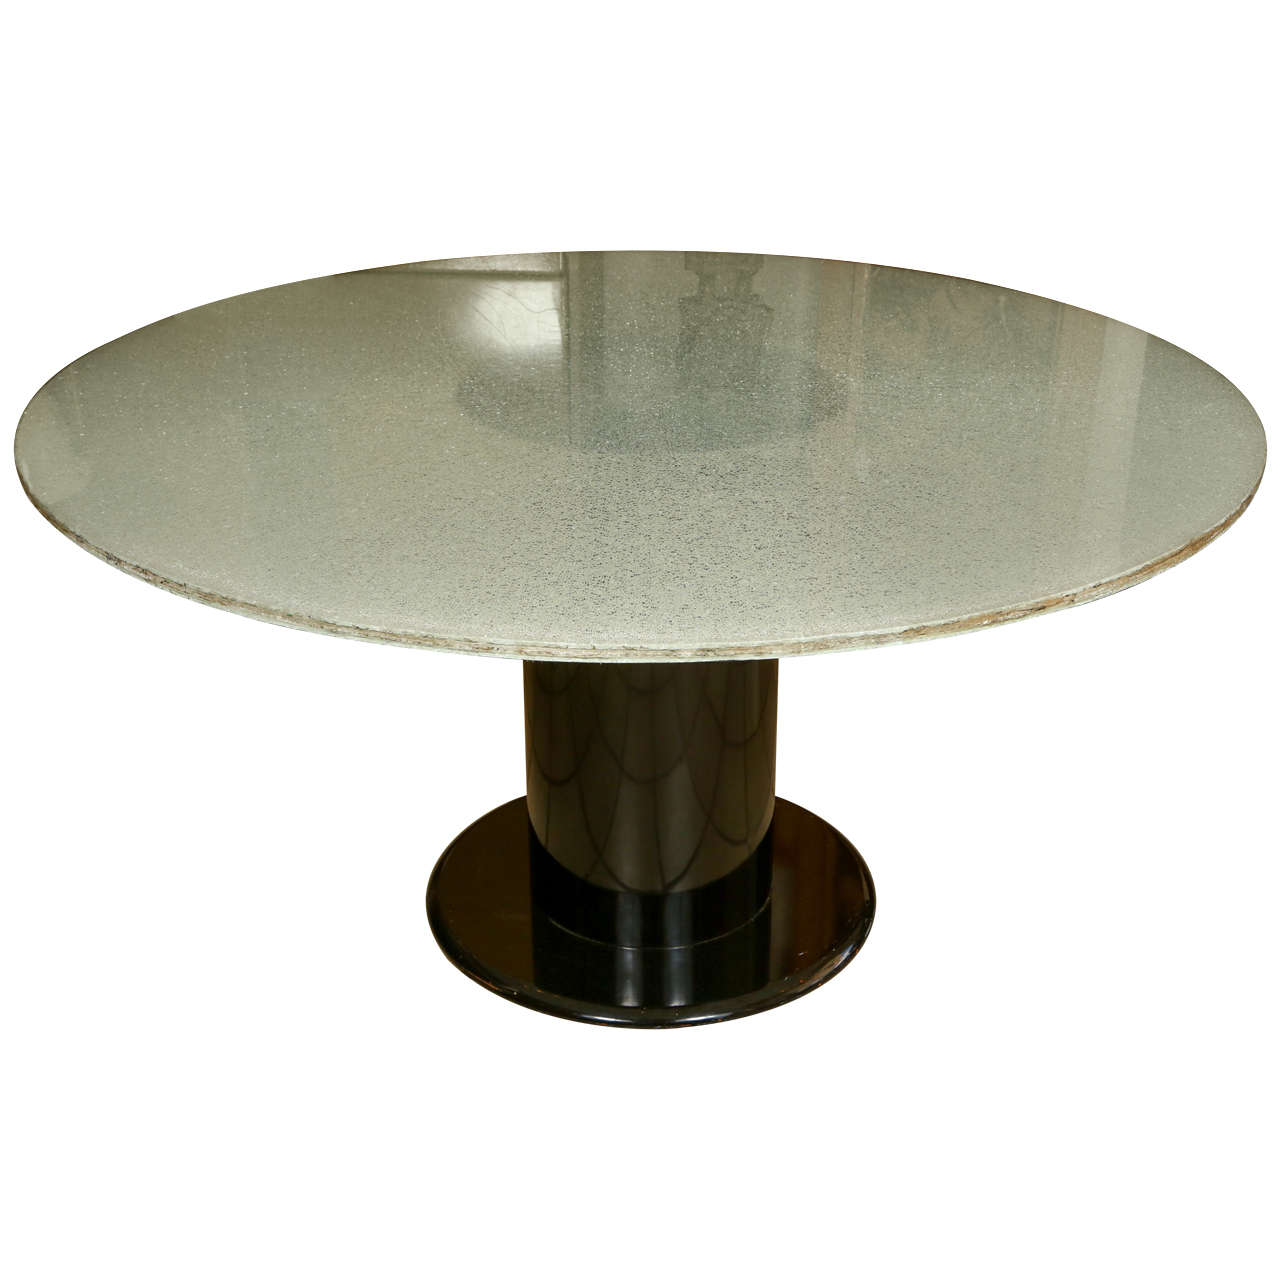 Interesting round dining table with a crackled acrylic top for Interesting table tops